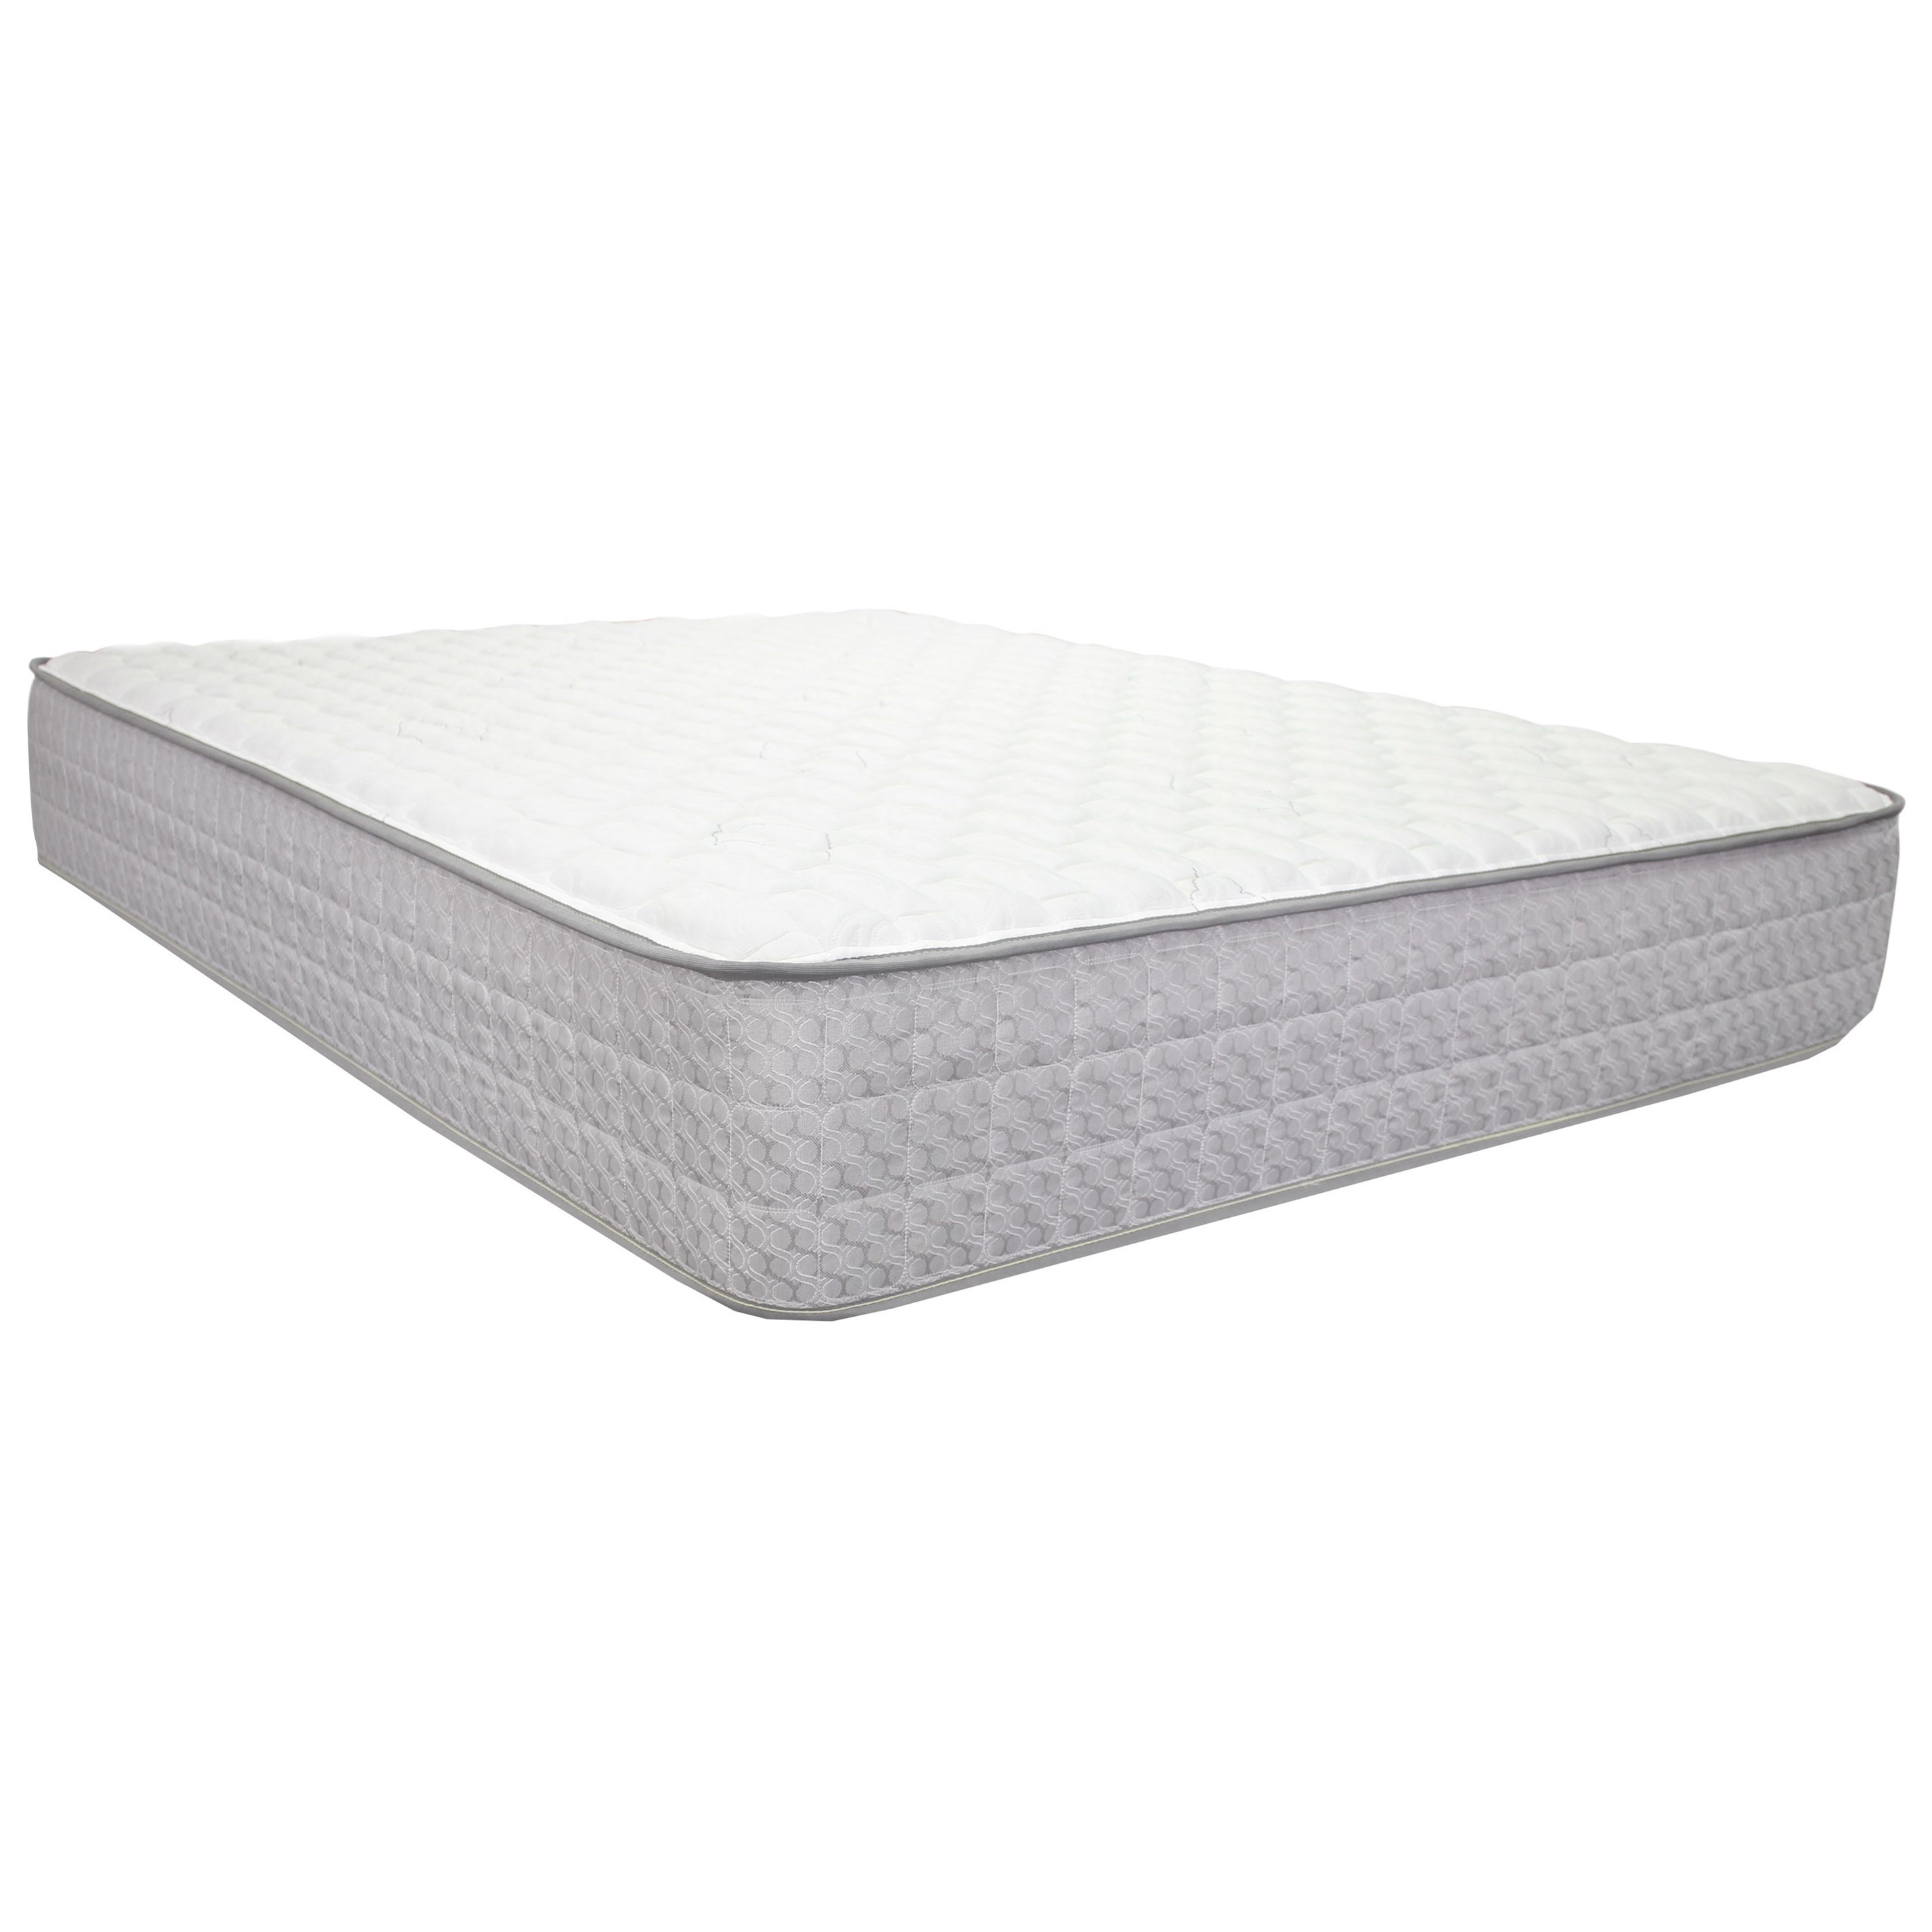 "Twin 11 1/2"" Firm Mattress"